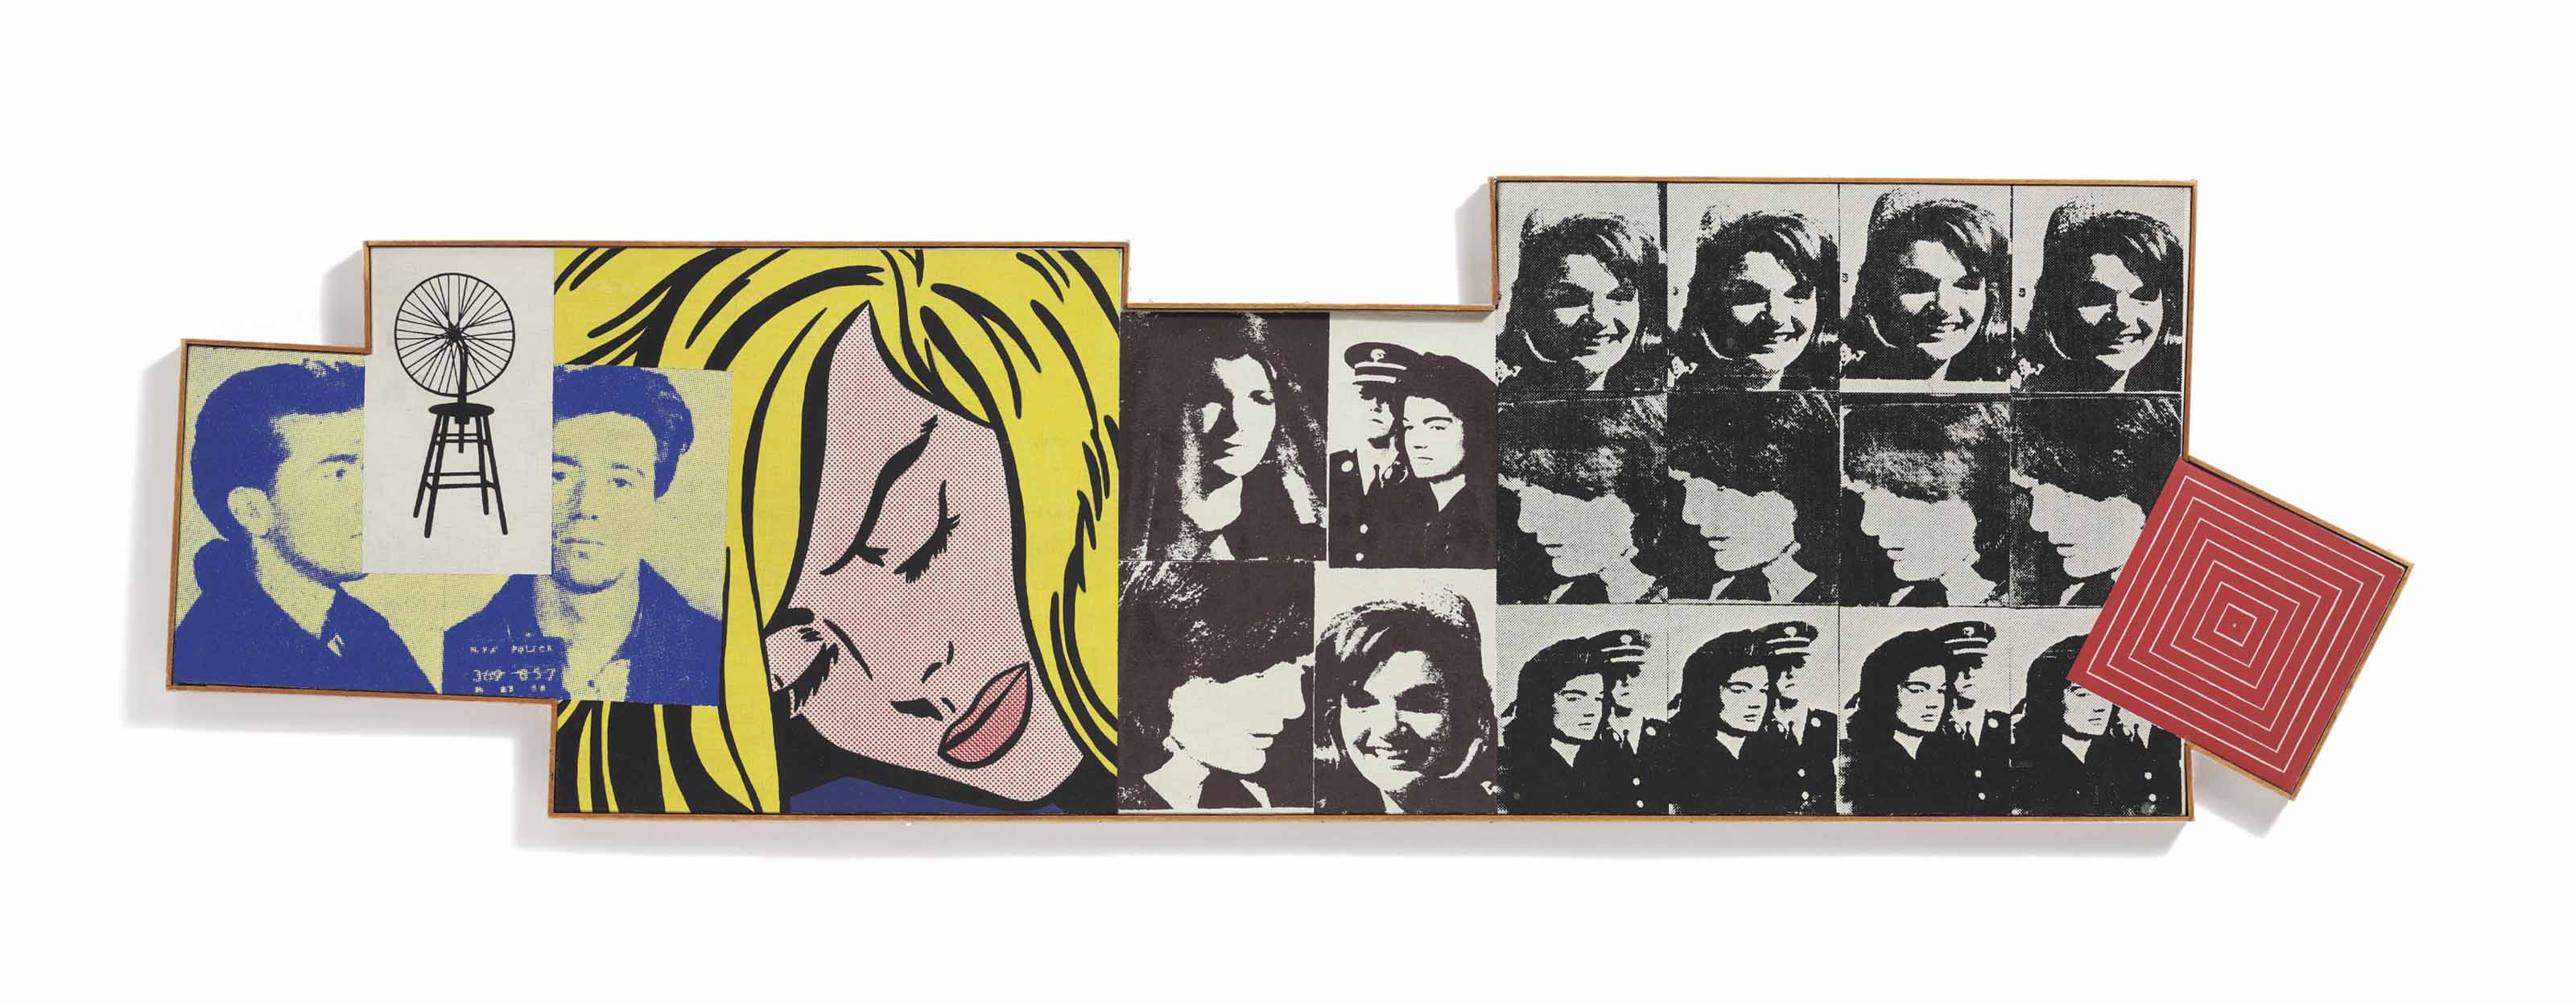 "Marcel Duchamp, ""Bicycle Wheel,"" 1913; Andy Warhol, ""Most Wanted Man,"" 1964; Roy Lichtenstein, ""Sleeping Girl,"" 1964; Andy Warhol, ""16 Jackies,"" 1964; and Frank Stella, ""Island #10,"" 1962"